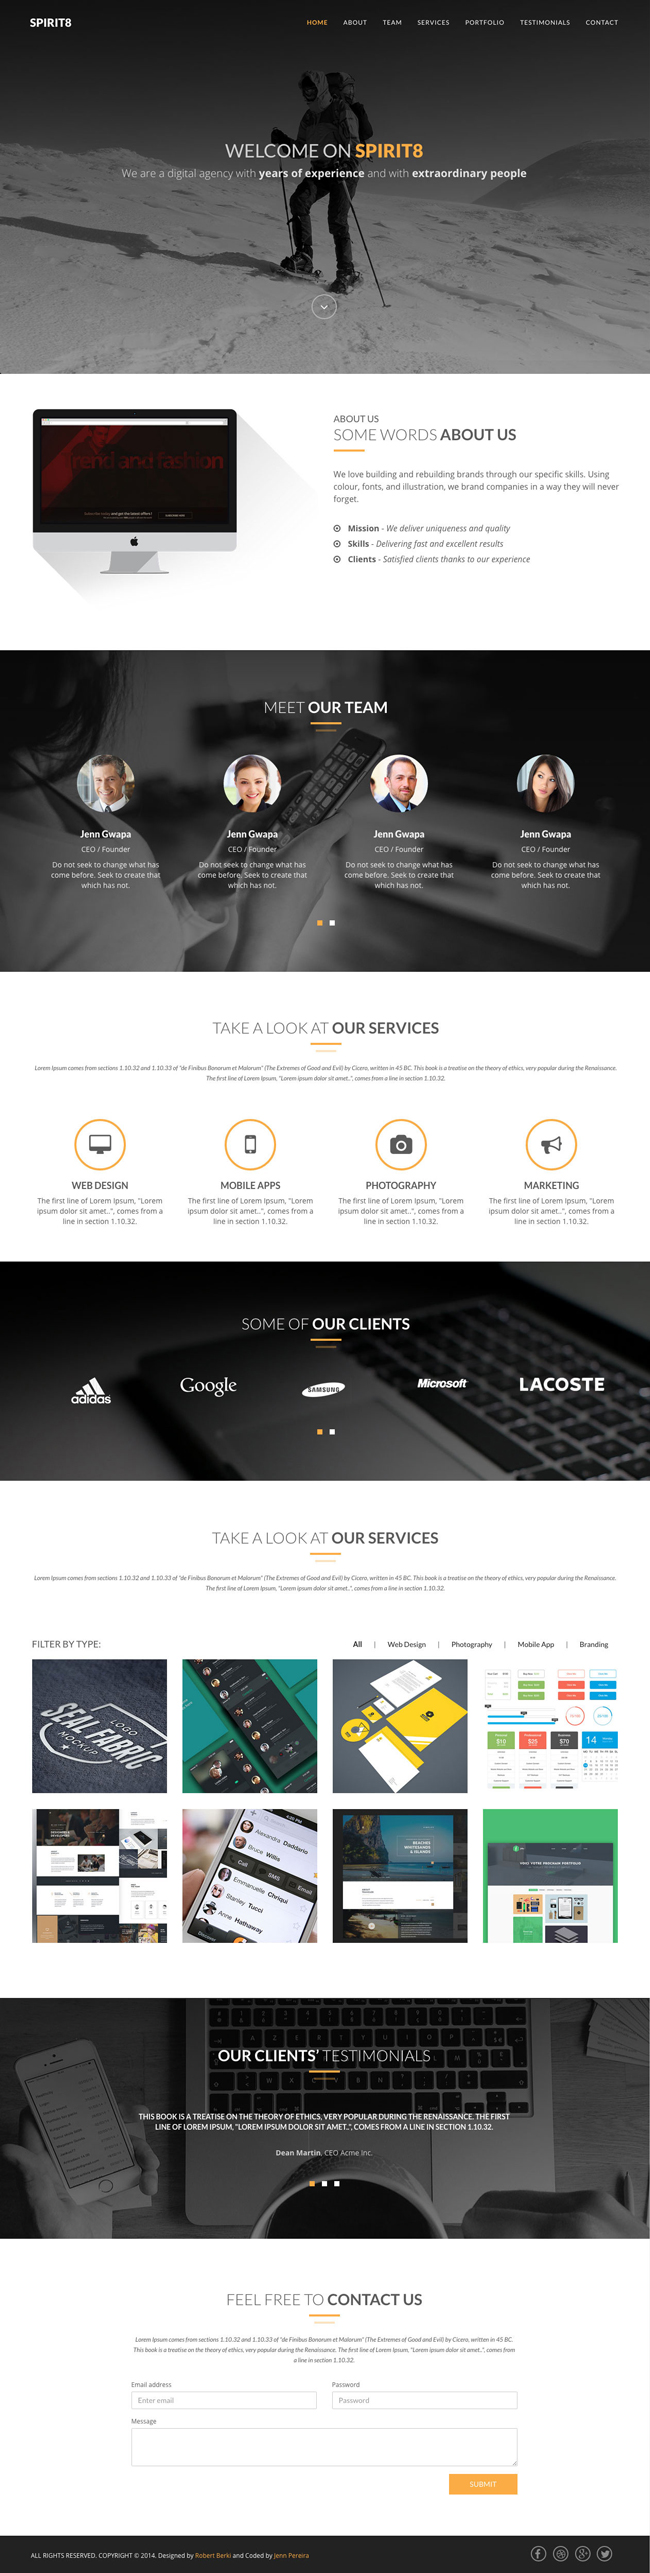 Free Download Spirit8 Bootstrap Based Html Template Psd Included Html Templates Ecommerce Template Templates